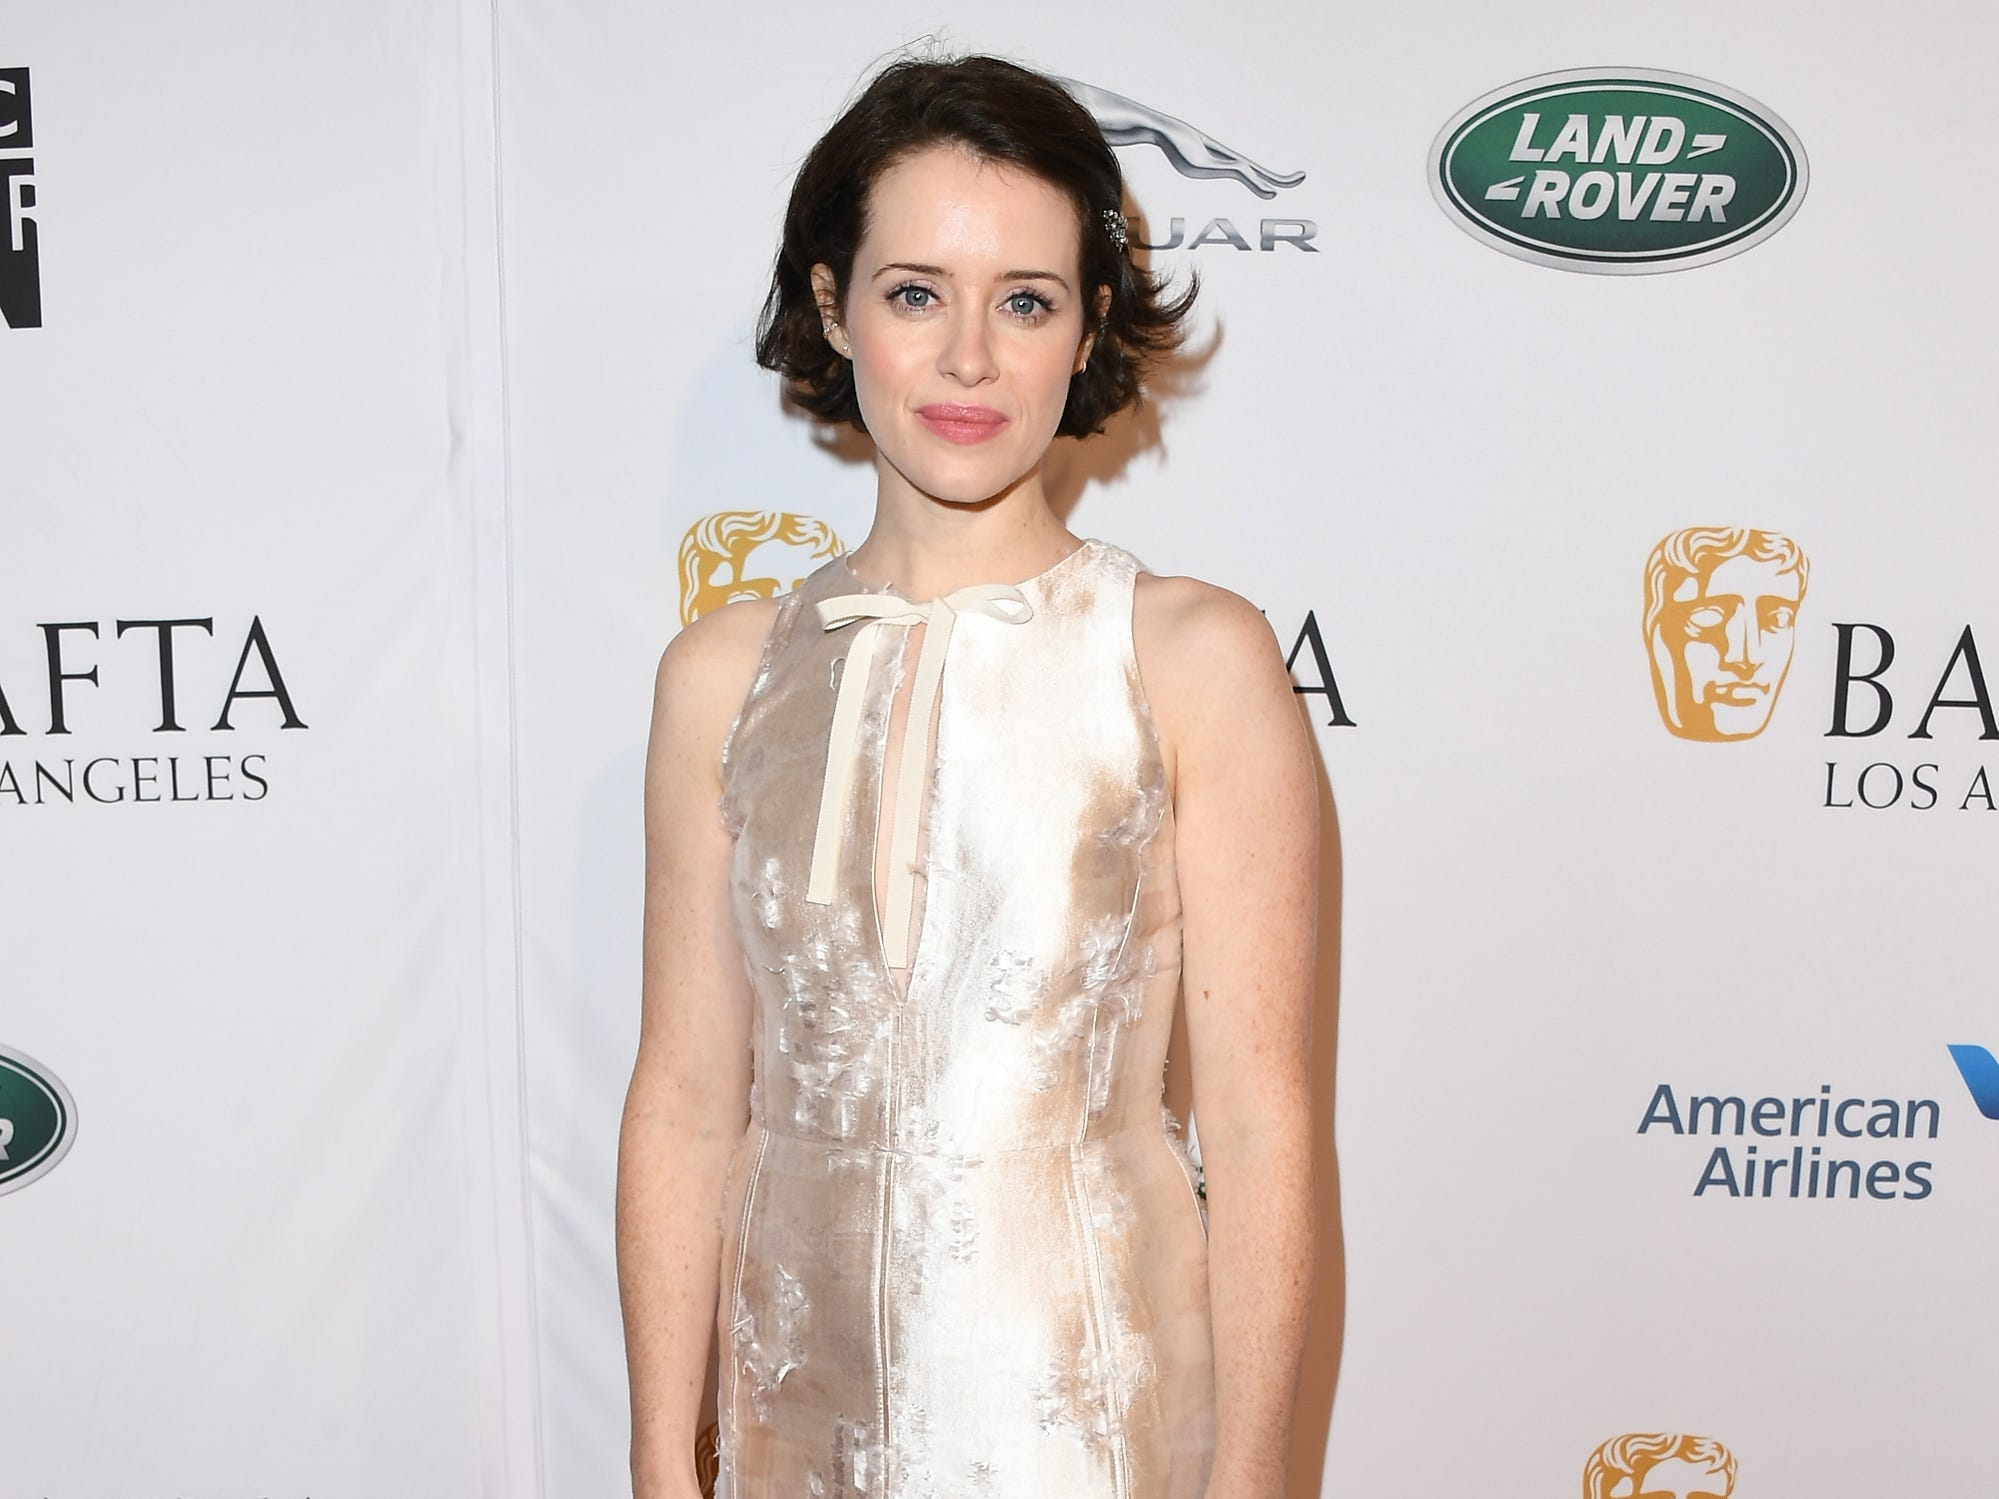 LOS ANGELES, CA - JANUARY 05:  Claire Foy attends The BAFTA Los Angeles Tea Party at Four Seasons Hotel Los Angeles at Beverly Hills on January 5, 2019 in Los Angeles, California.  (Photo by Jon Kopaloff/Getty Images) ORG XMIT: 775261683 ORIG FILE ID: 1077925212